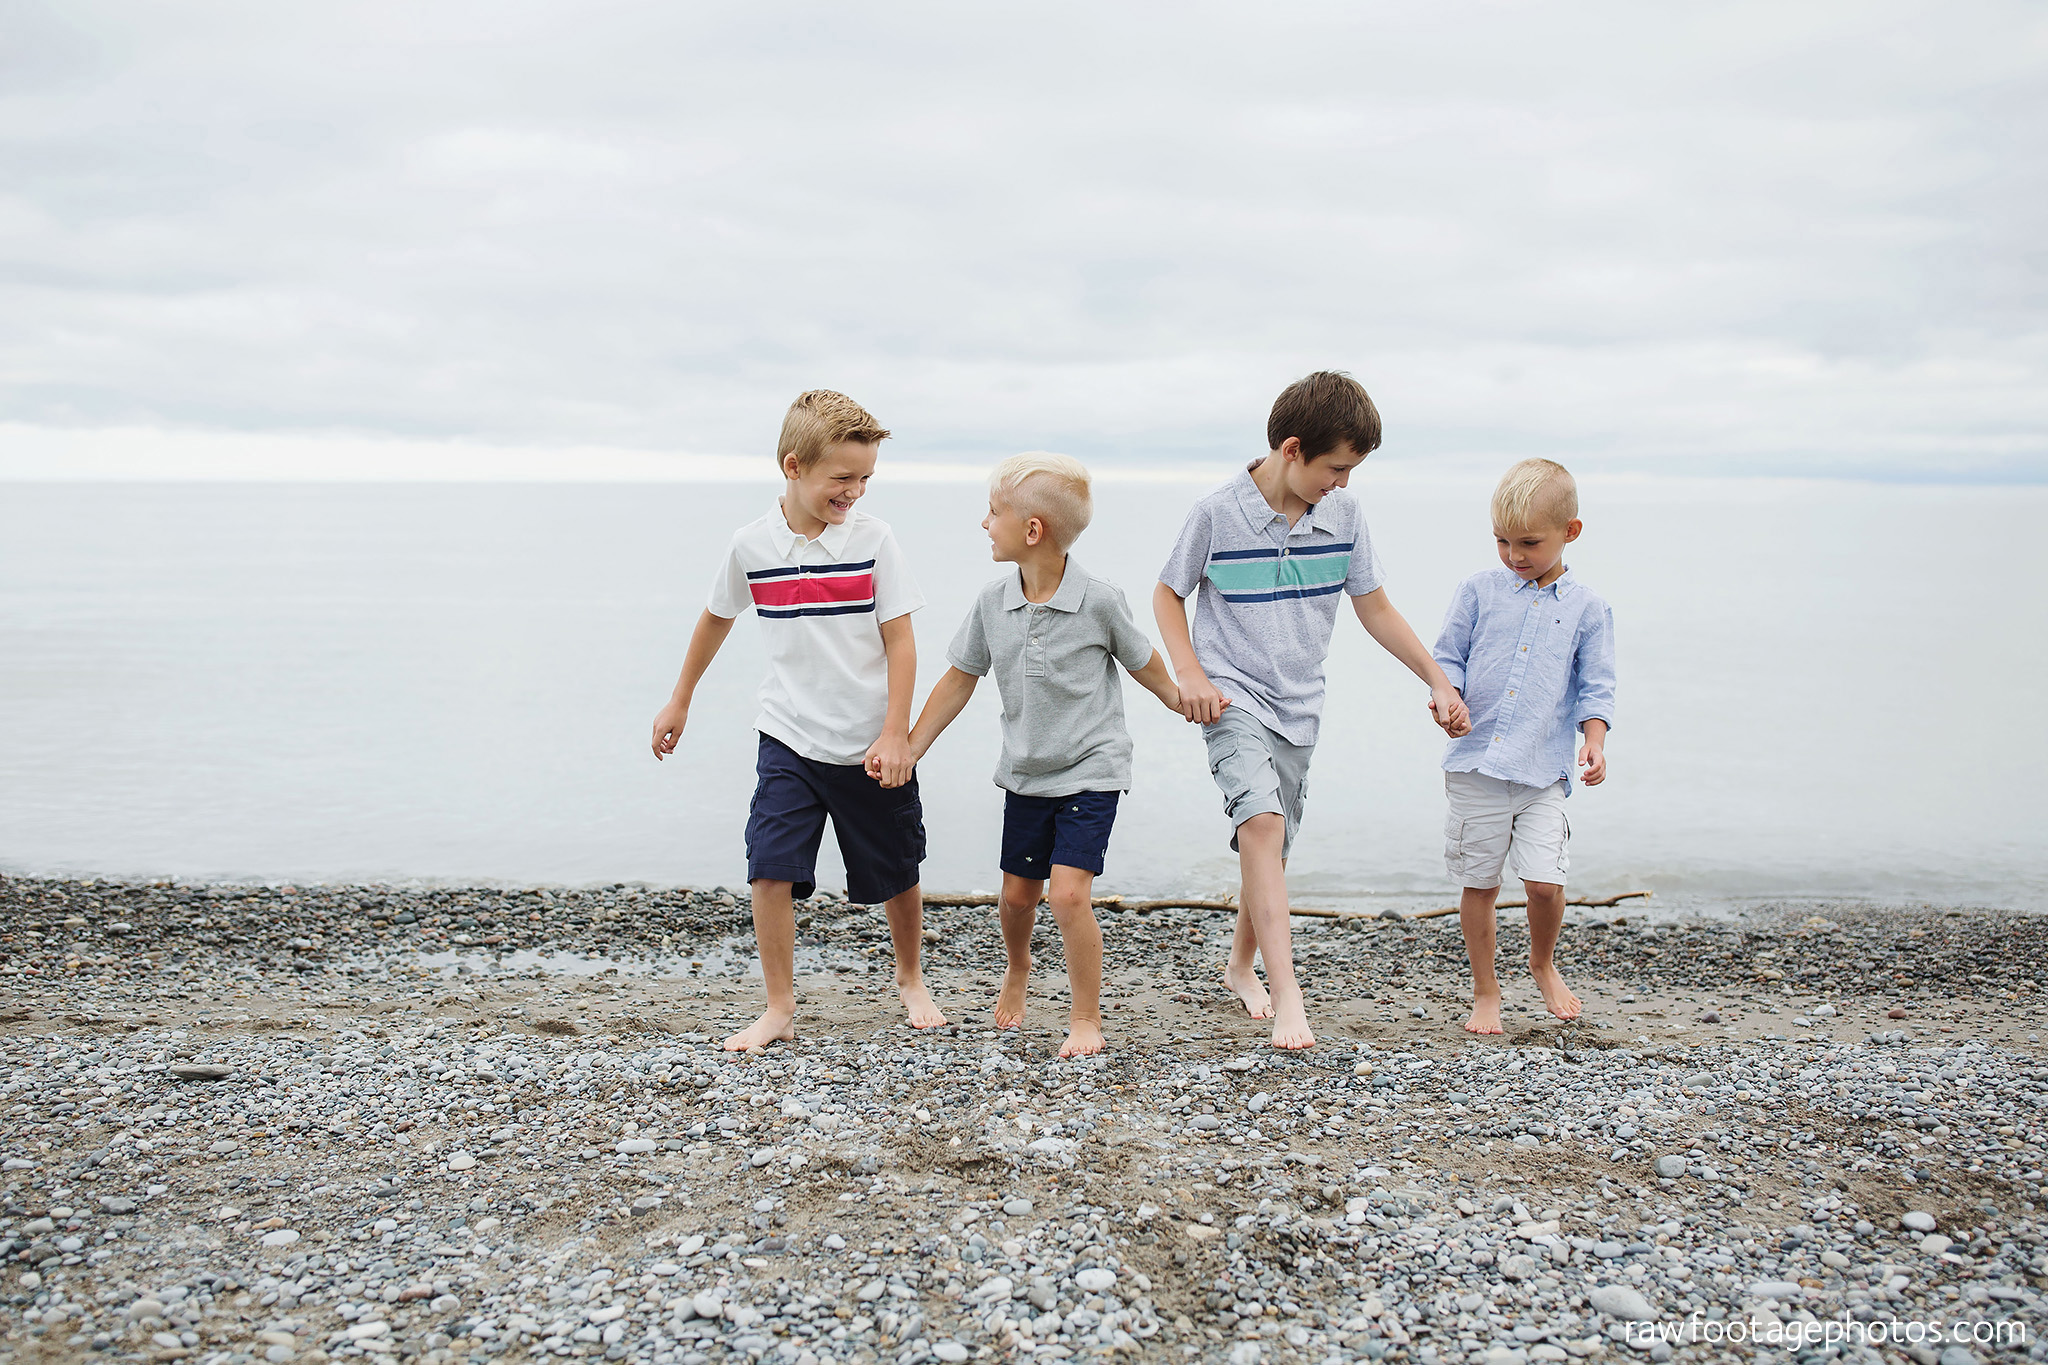 london_ontario_family_photographer-beach_minis-port_stanley_beach-raw_footage_photography067.jpg